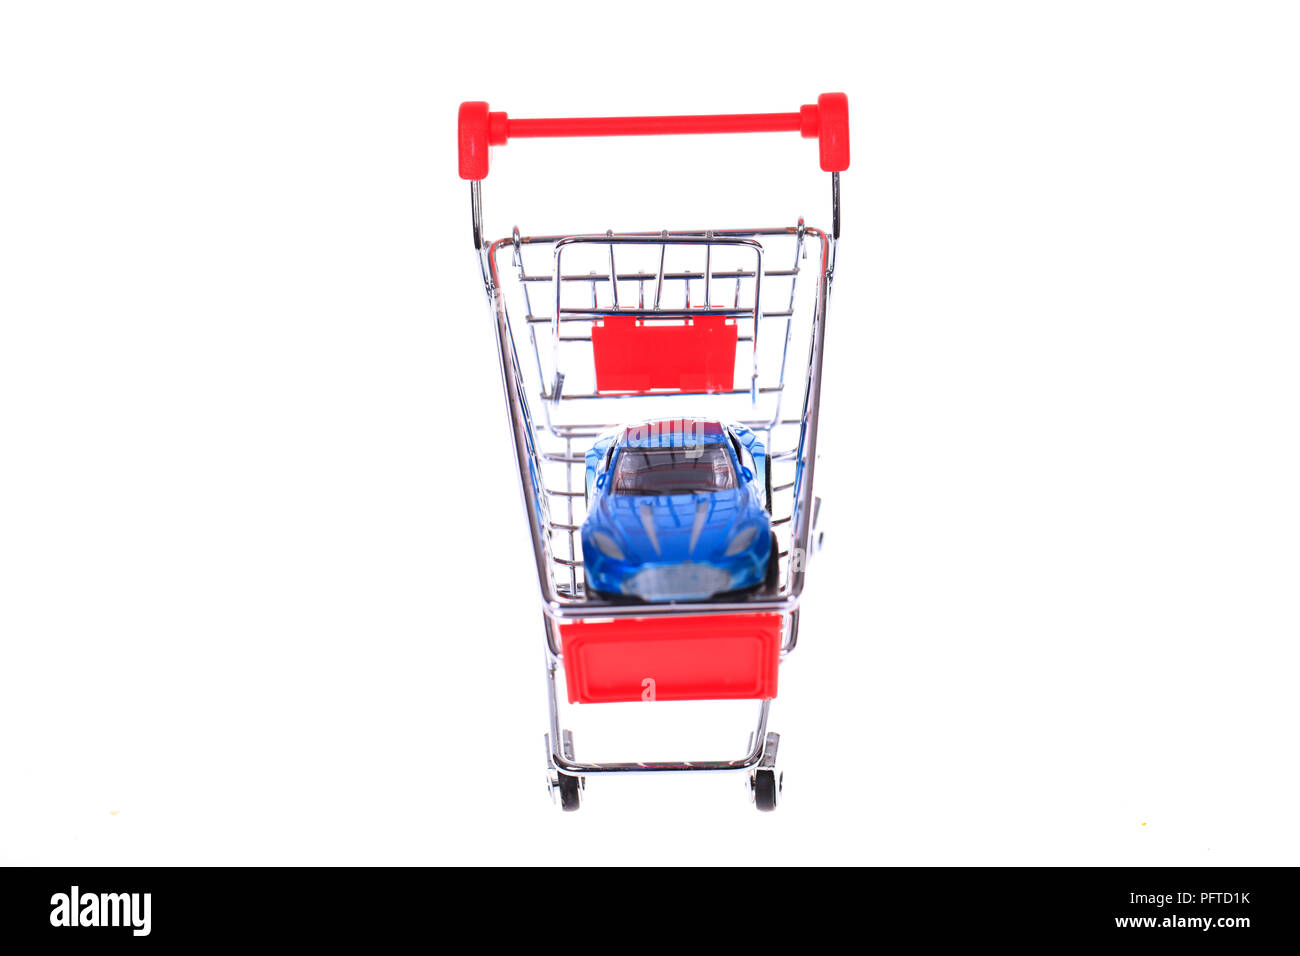 Car shopping, The car model in the shopping cart. - Stock Image